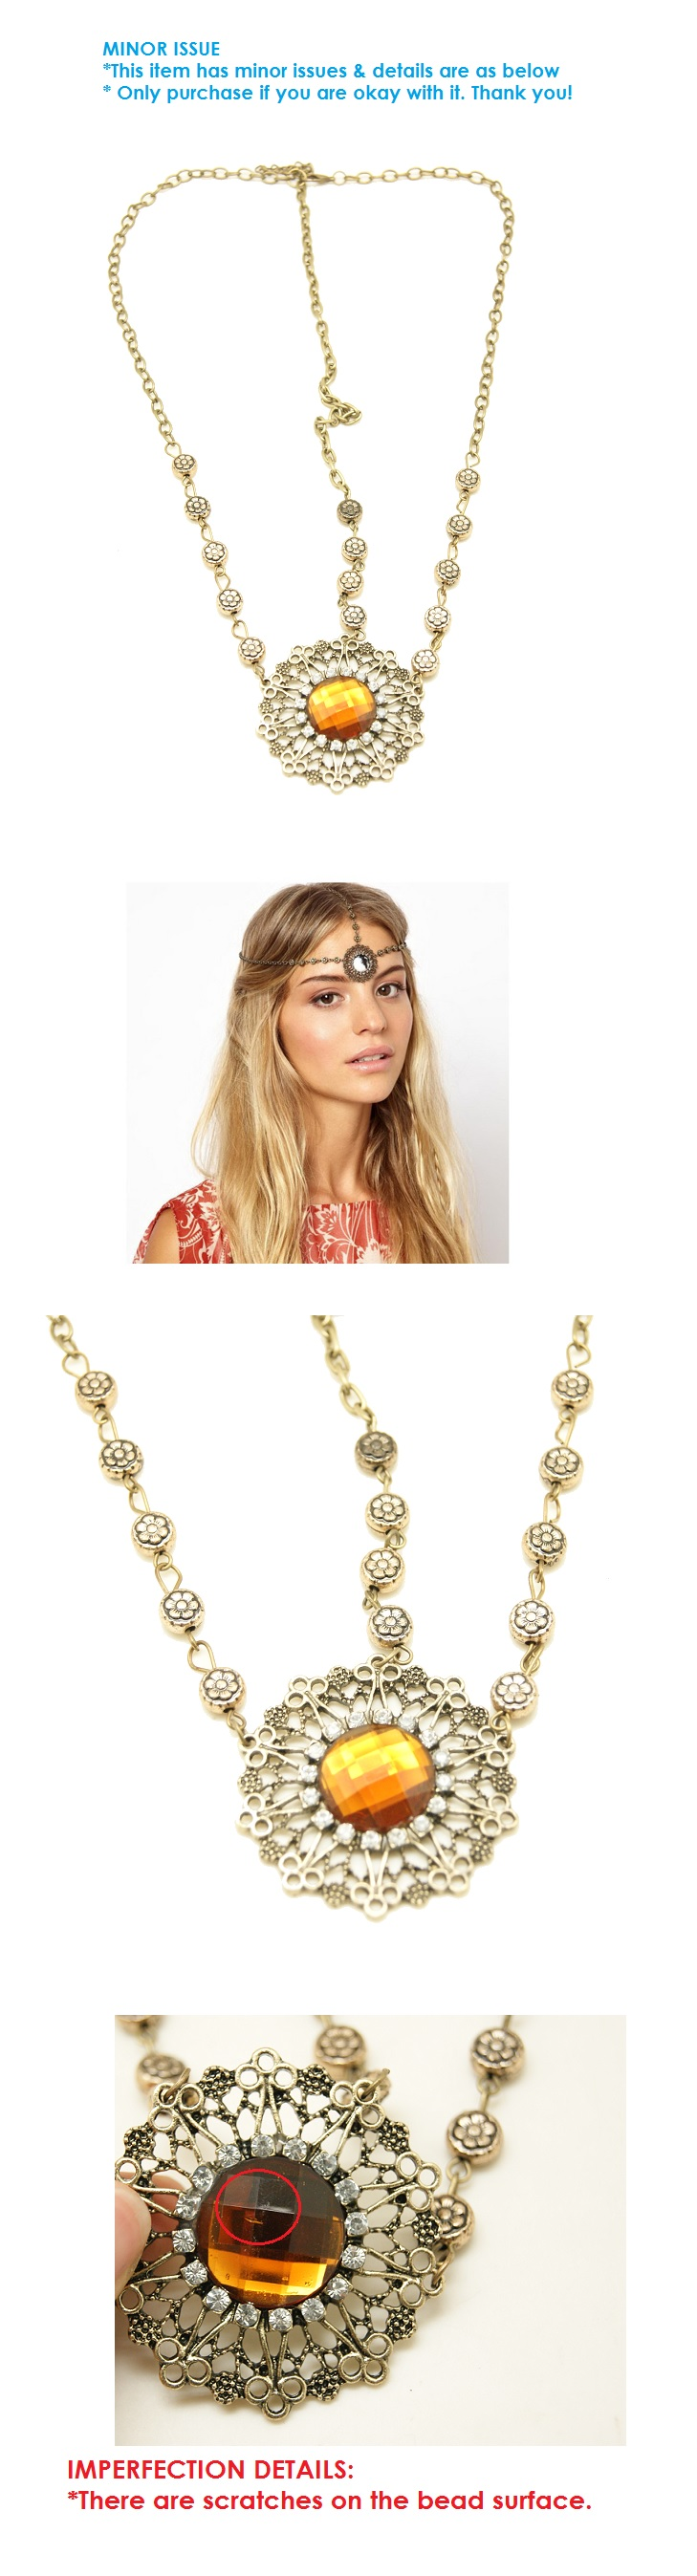 P109563 Vintage brown bead headchain hair accessories malaysia